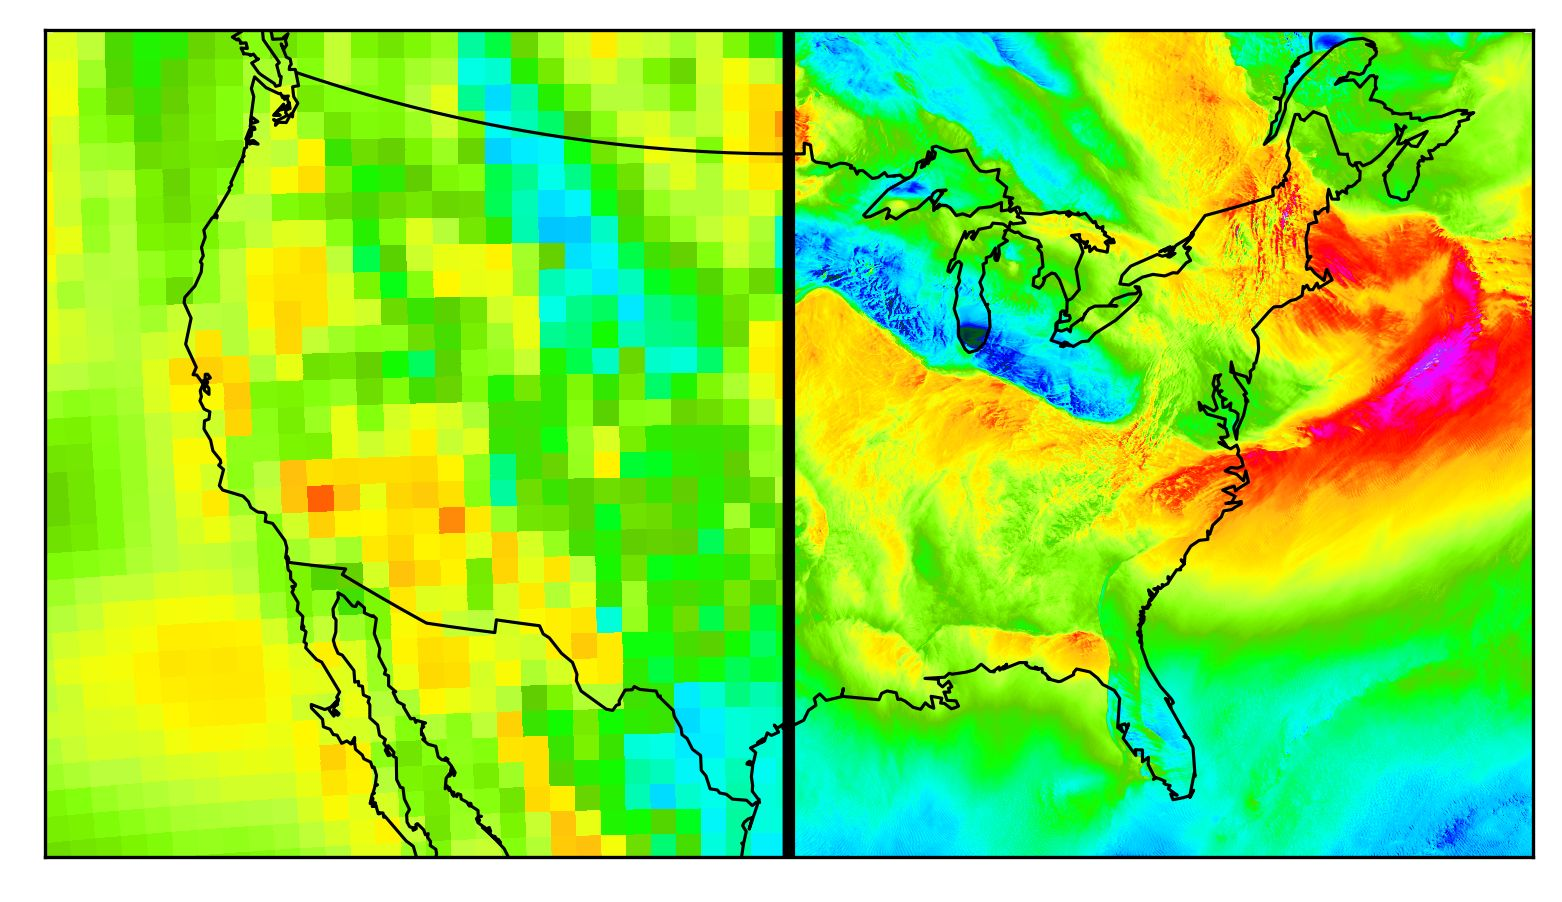 A before and after of the same climate data with enhanced resolution.